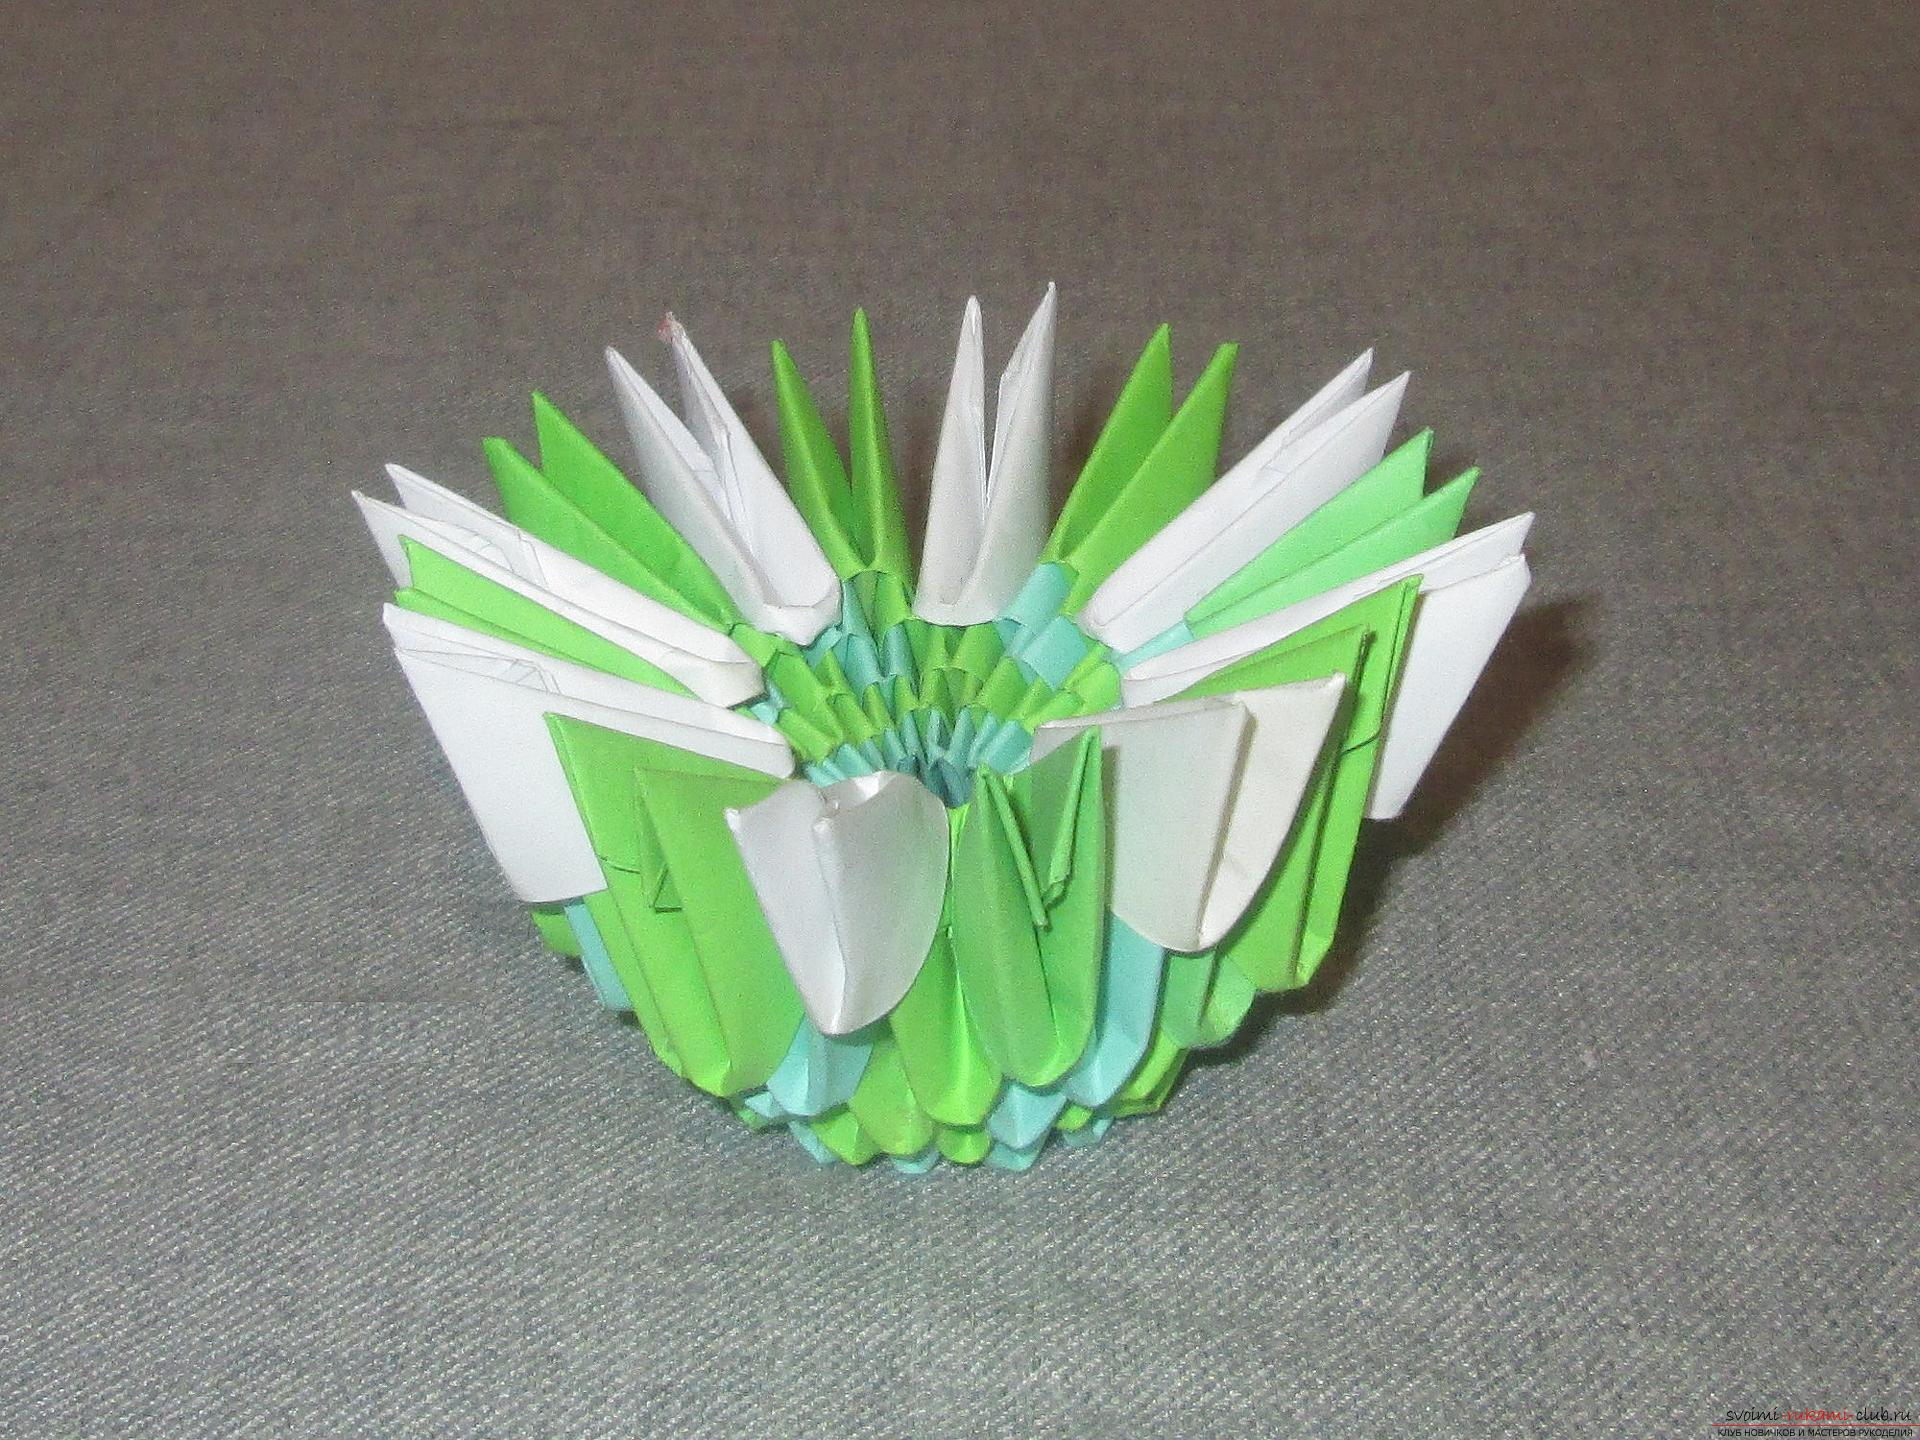 This detailed master-class modular origami with step-by-step photos contains a scheme for assembling birch from paper .. Photo # 5